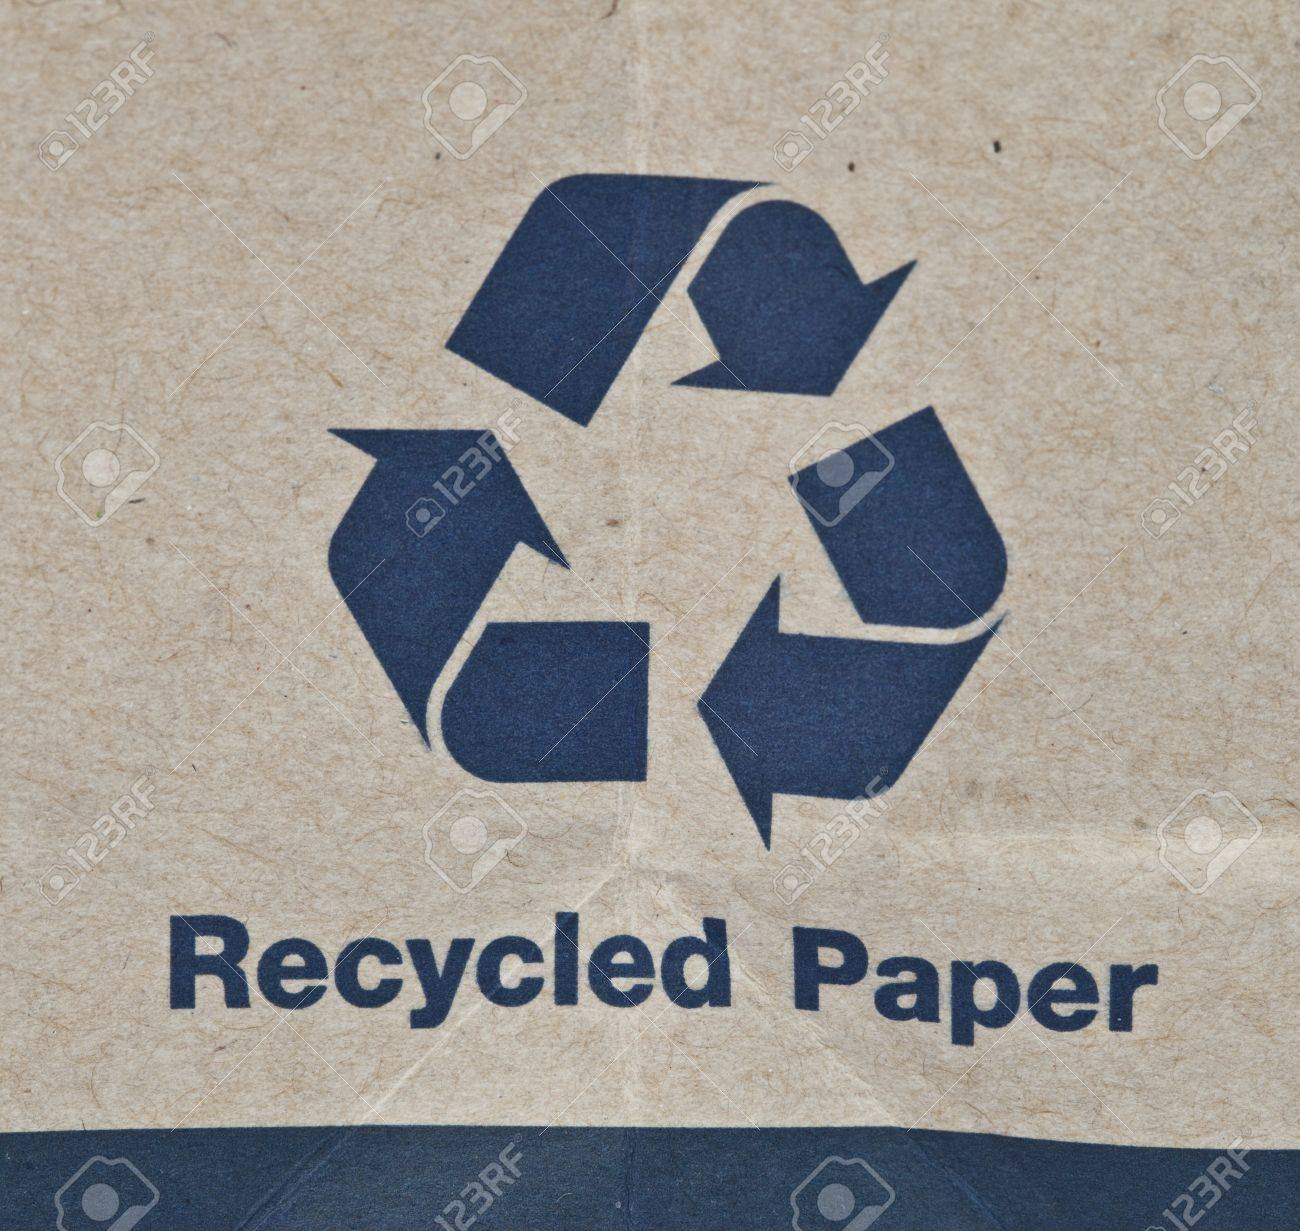 Paper recycled sign on grunge paper texture. Stock Photo - 13716355